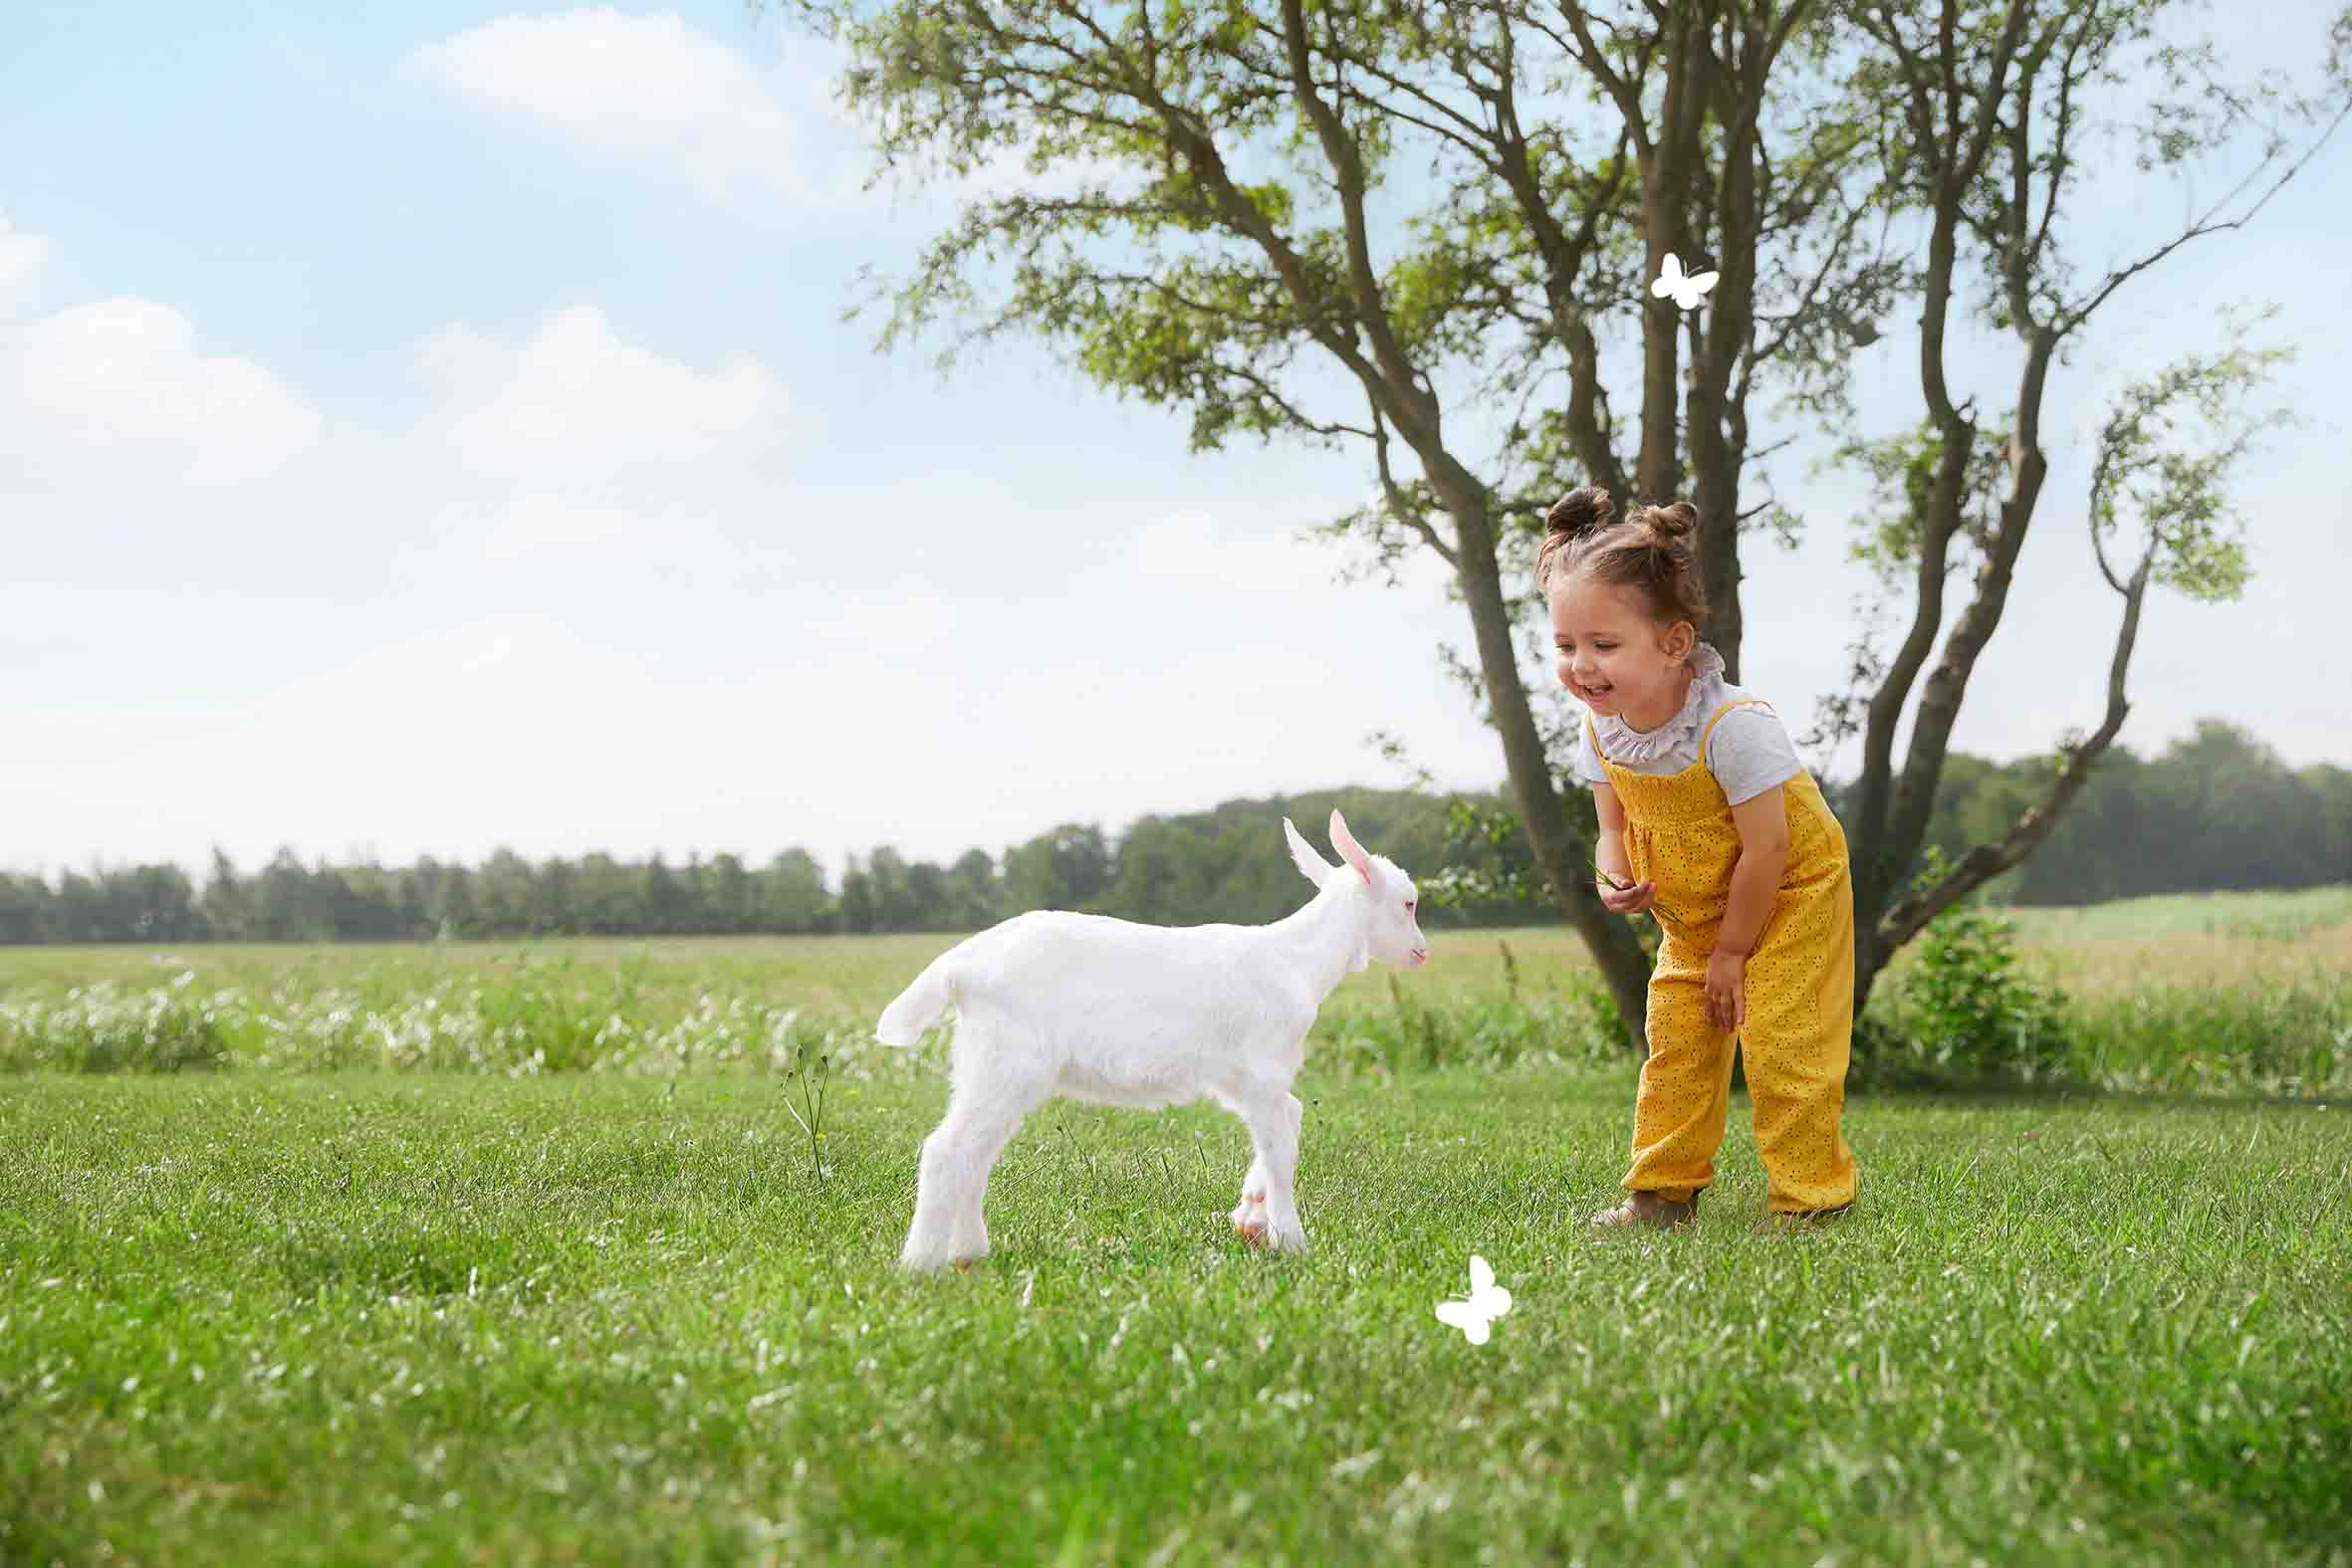 Why goatmilk?